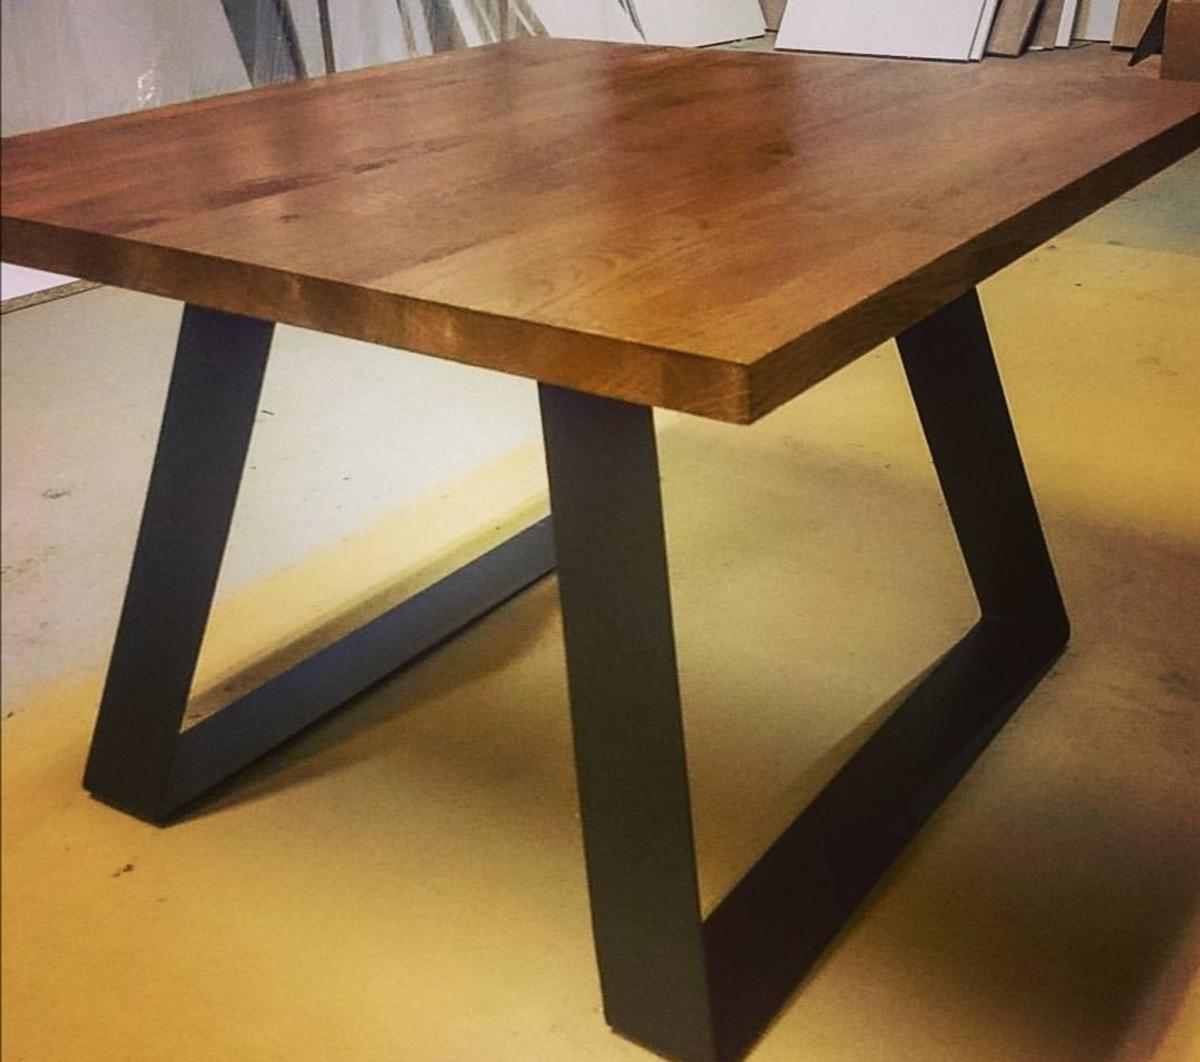 You can choose a colour of your lovely Coffe table. Solid steel legs and wooden worktop makes your Coffe tasty!